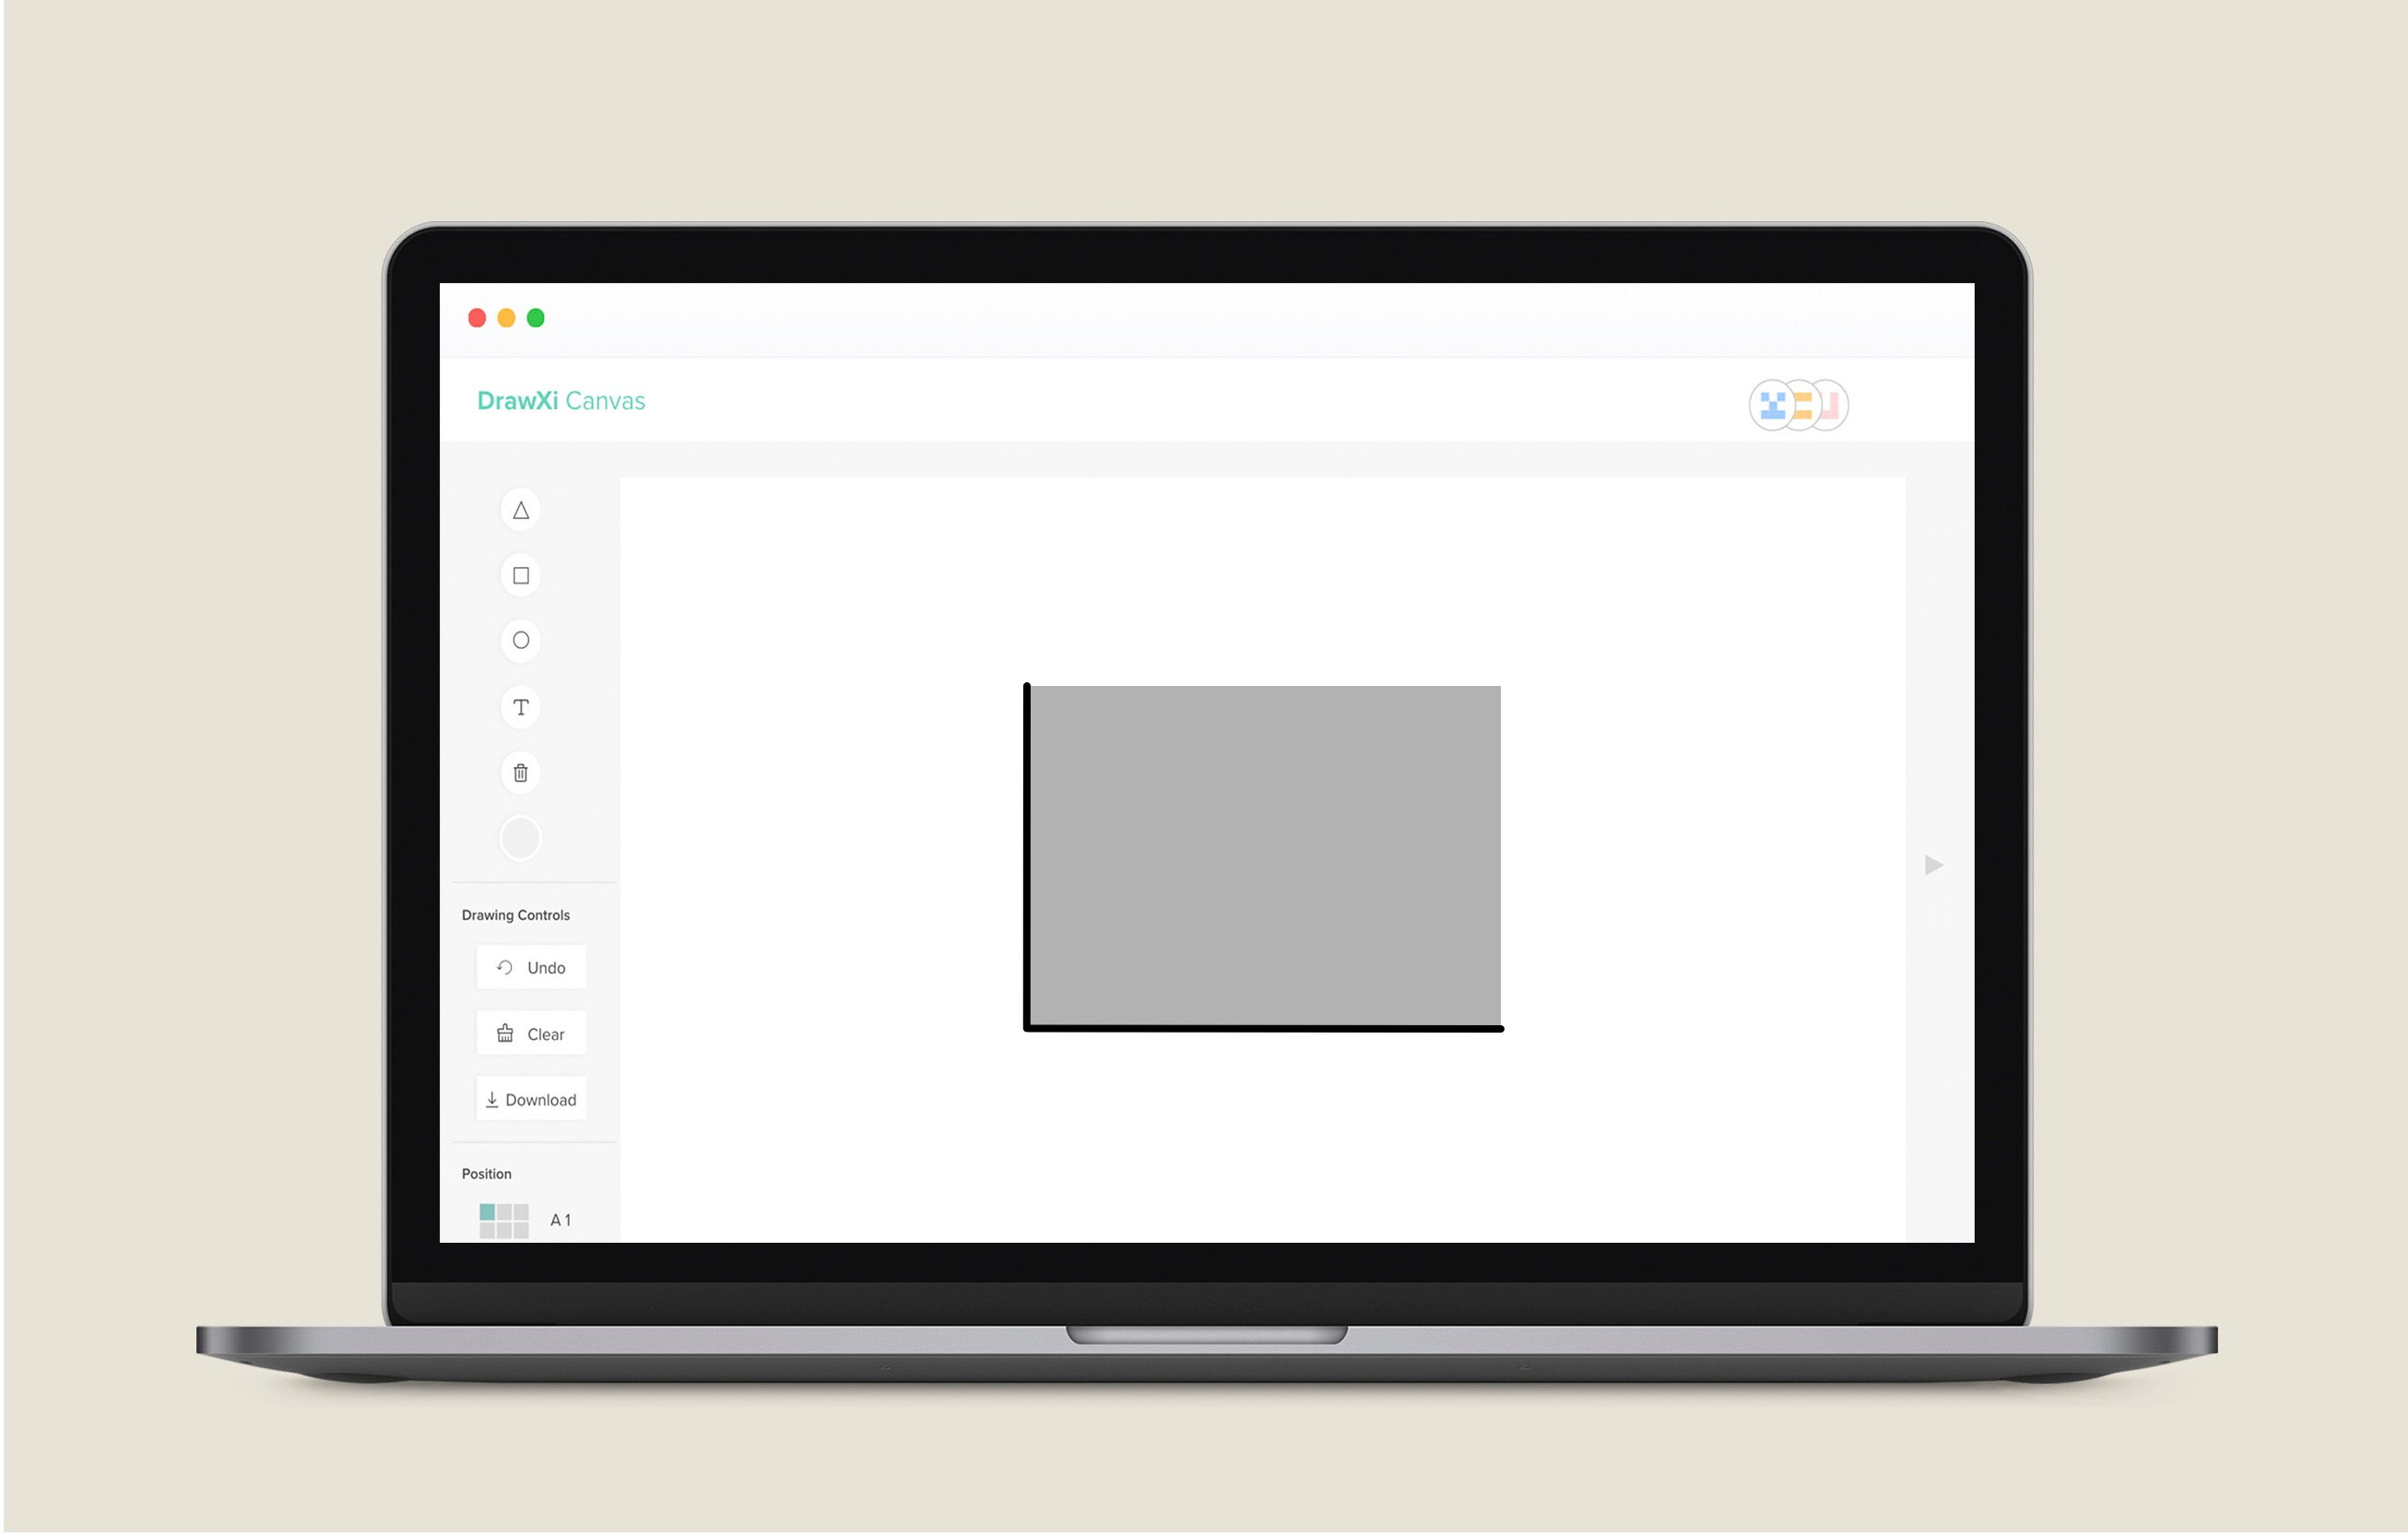 Image showing rectangle being drawn on Drawxi canvas after user has drawn a reactangle on Drawxi Board.